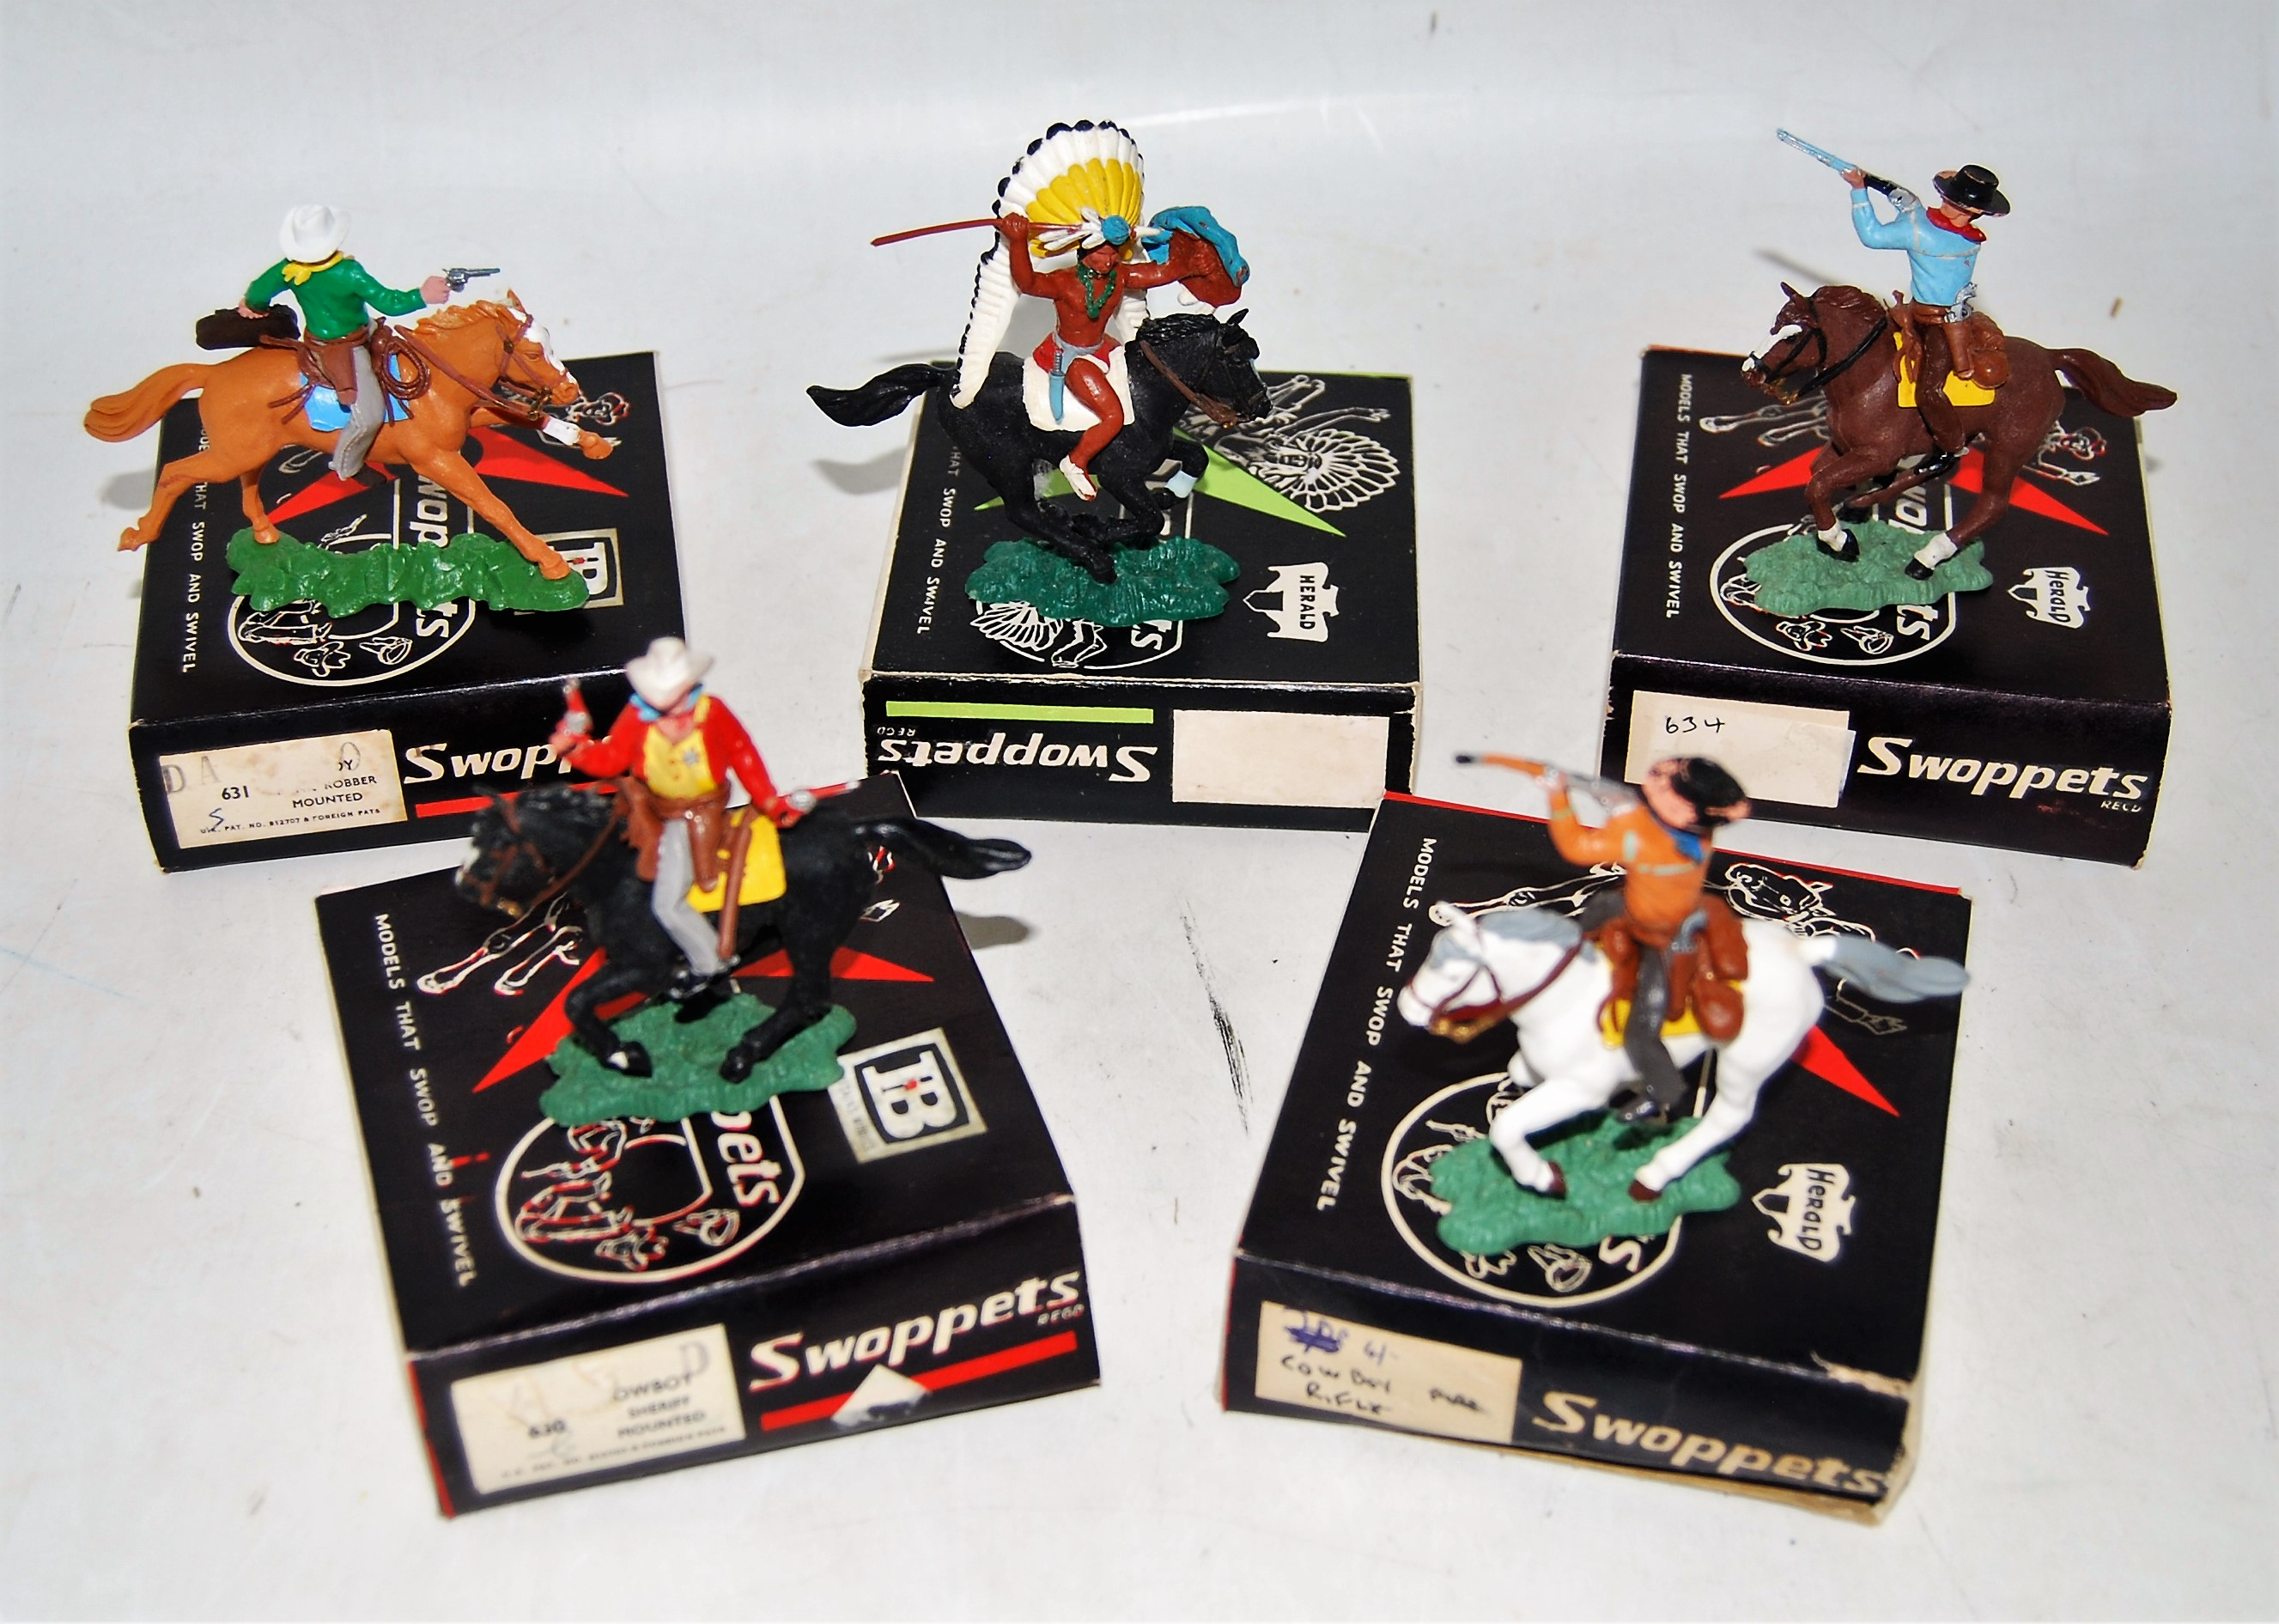 A Herald Swoppets boxed Cowboy & Indian plastic figure group to include Cowboy with rifle (mounted),